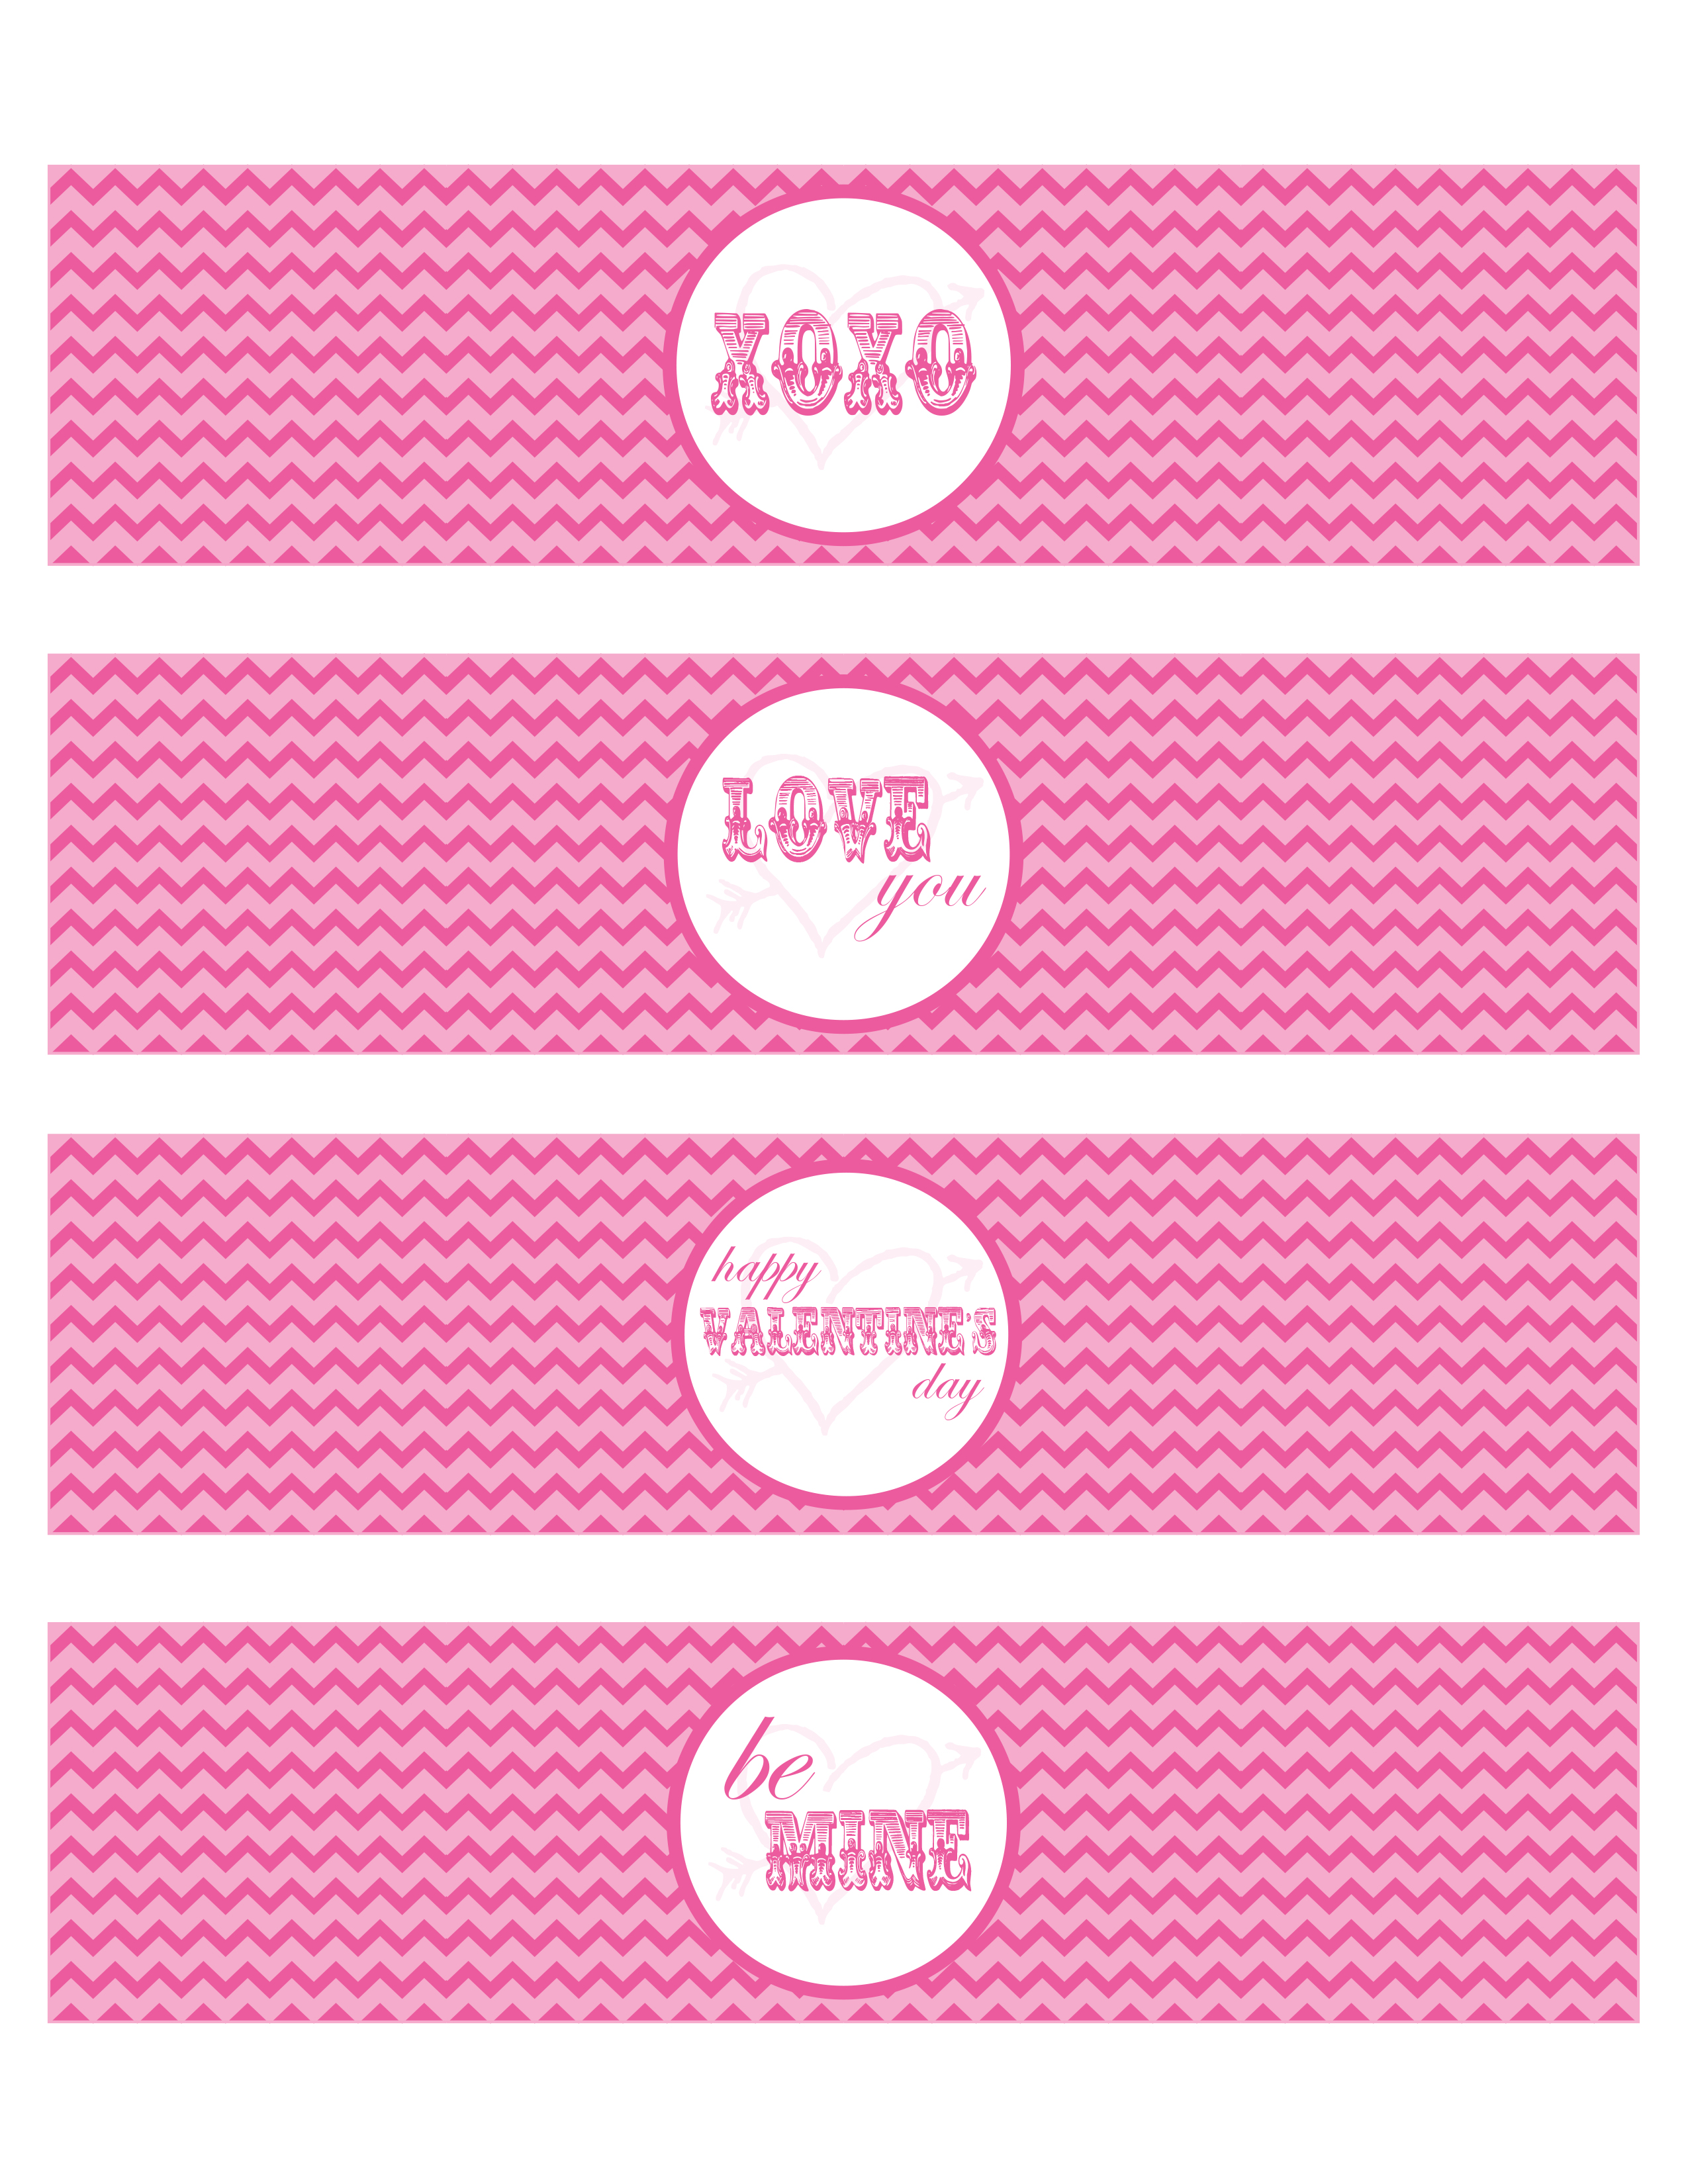 FREE Valentine's Day Party Printables from Pick.Print.Party ...